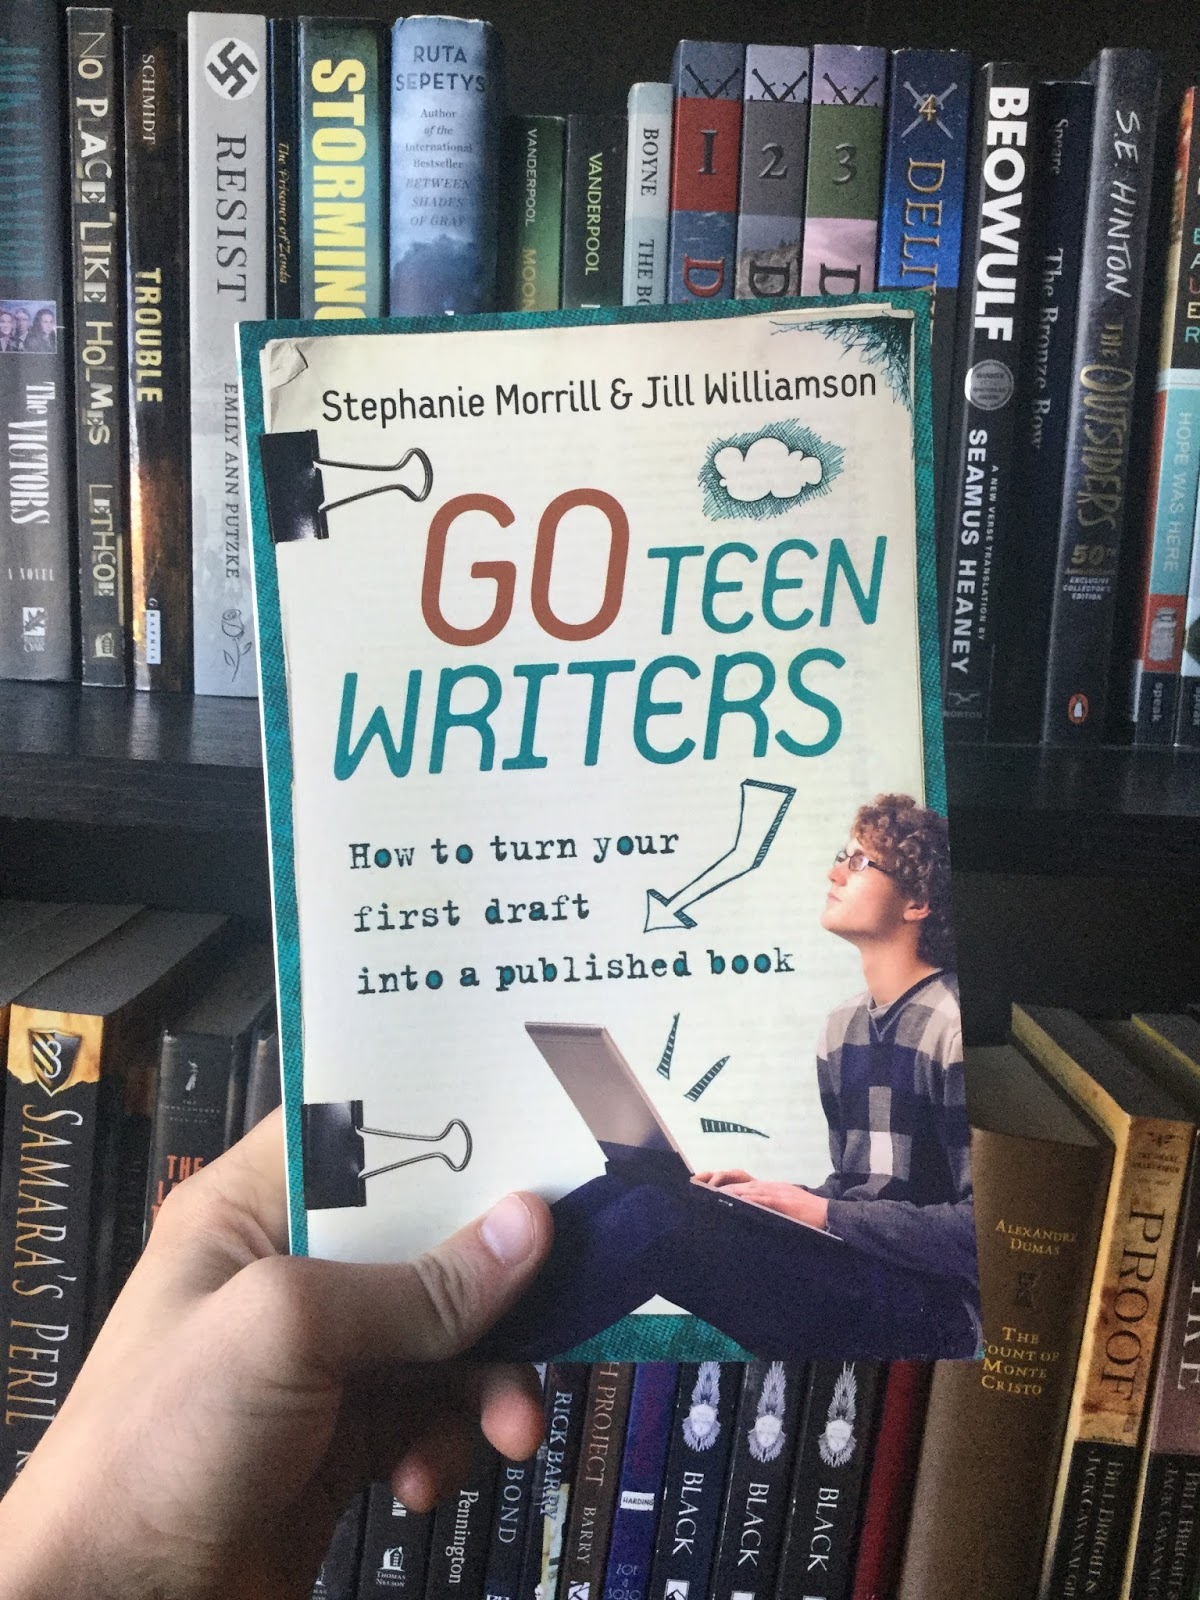 Not Only Does Summer Mean More Reading Time, It Means More Writing Time  And This Is Pretty Much The Most Helpful Book On Writing That I've Ever  Read